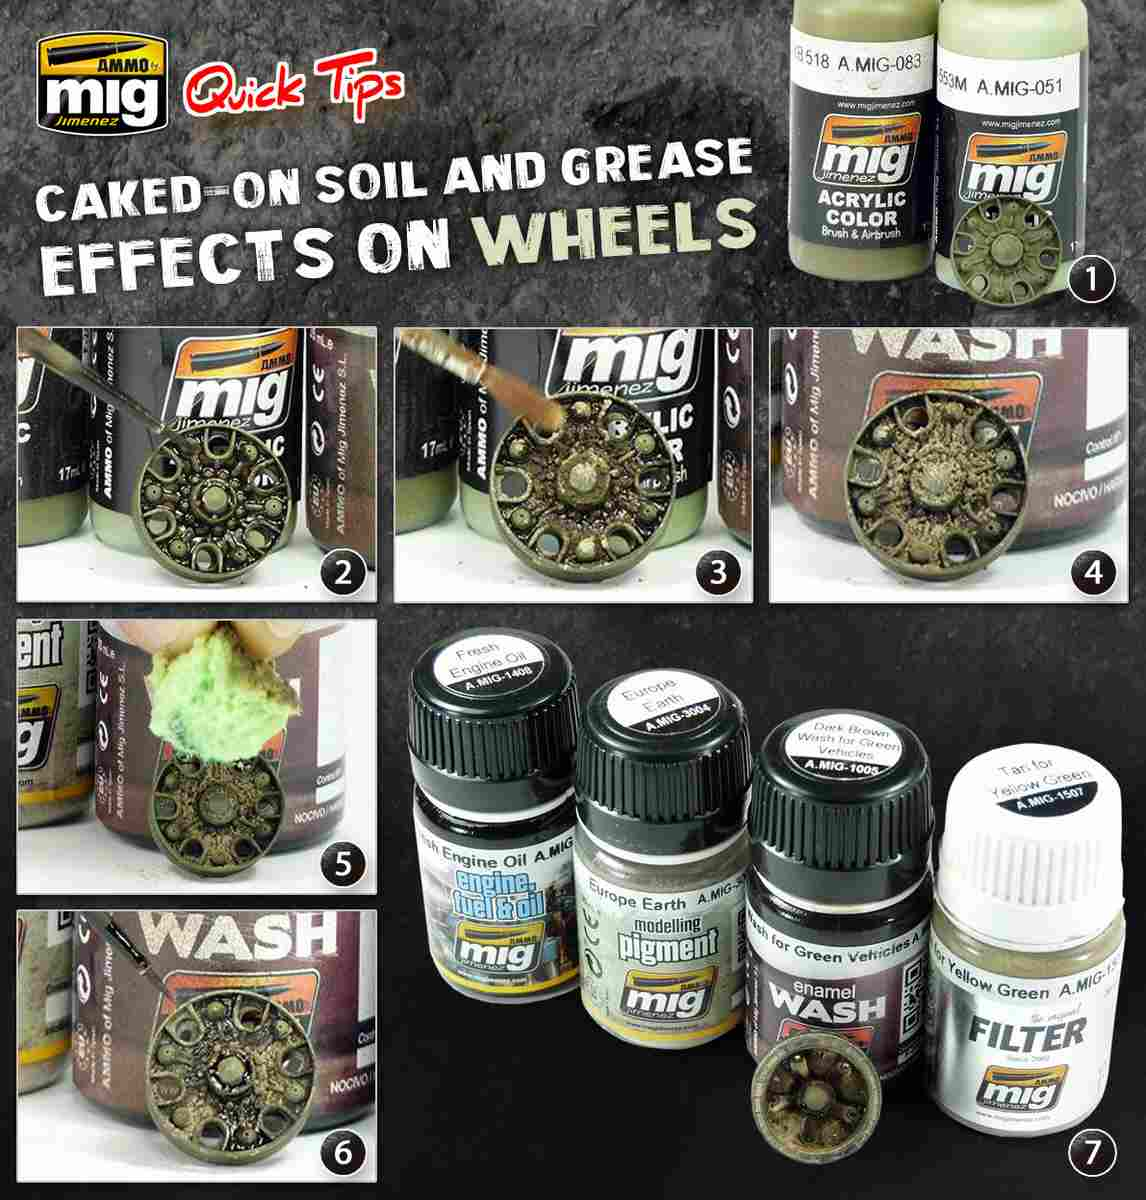 Ammo-by-Mig-Caked-Soil-effects Caked Soil and grease Effects on wheels Ammo by Mig Quicktip